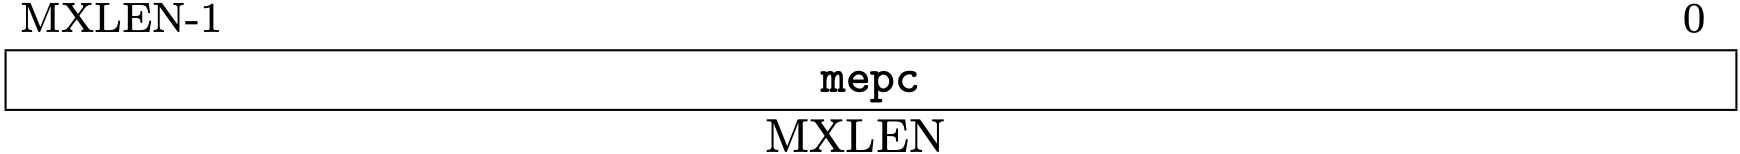 Fig 3.13 mepc register (Source: Figure 3.24: Machine exception program counter register. in Volume II: Privileged Architecture)